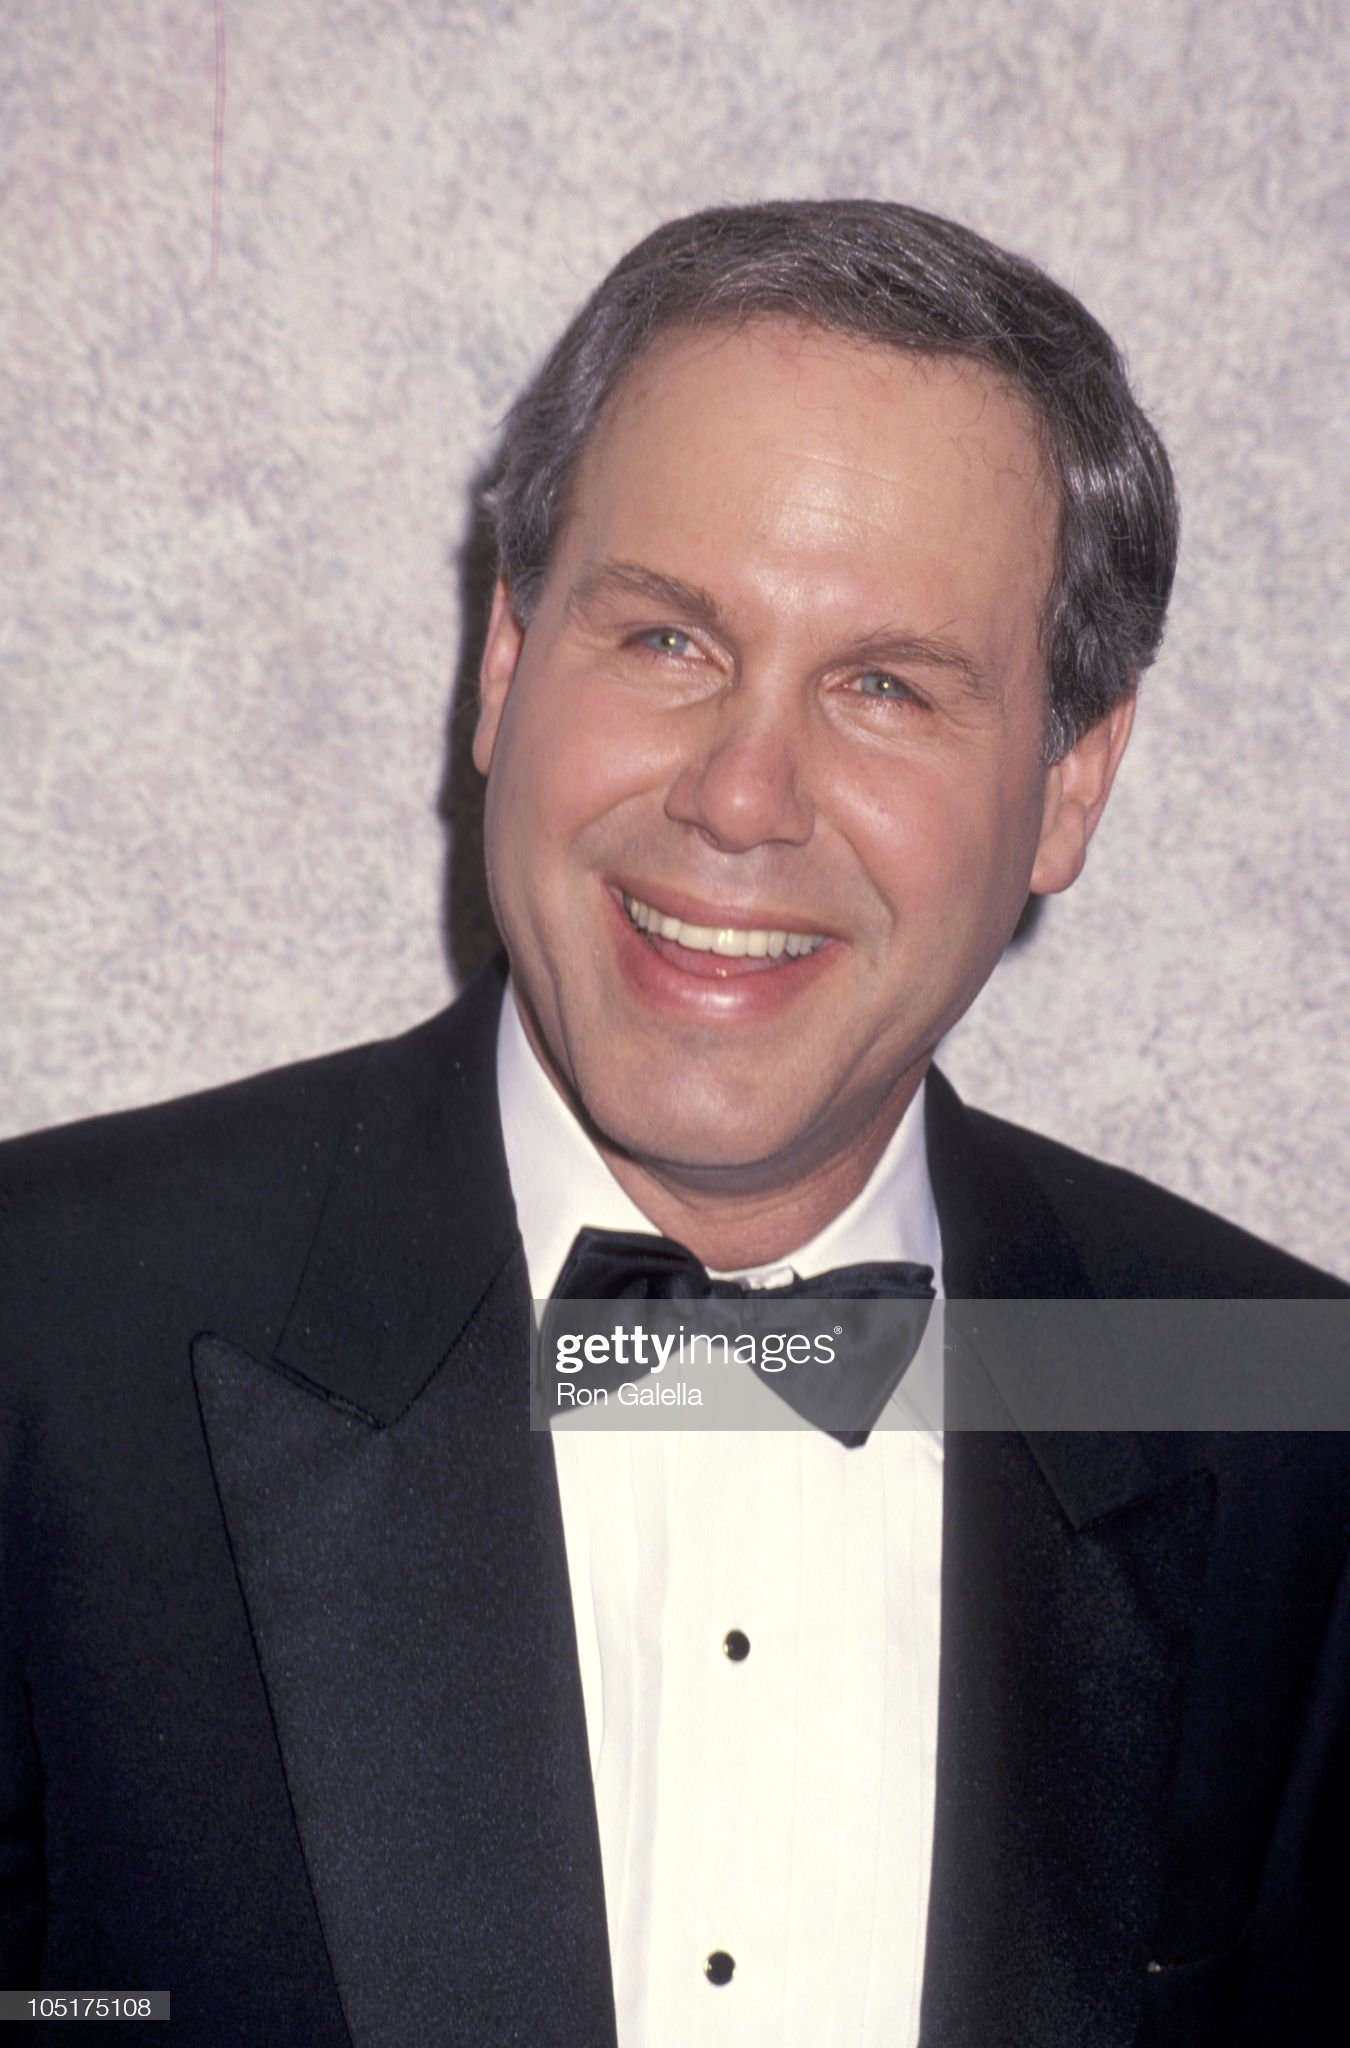 michael-eisner-during-the-3rd-annual-american-teacher-awards-by-the-picture-id105175108